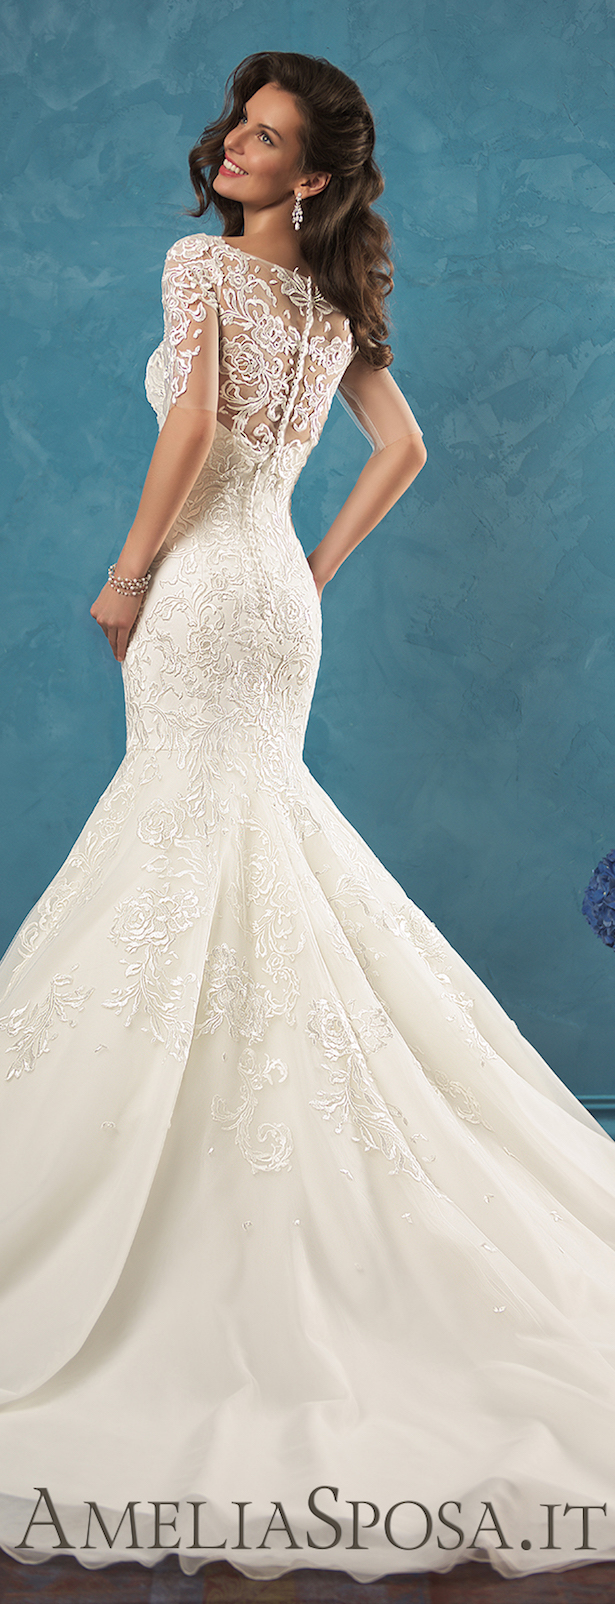 Amelia Sposa 2017 Wedding Dress